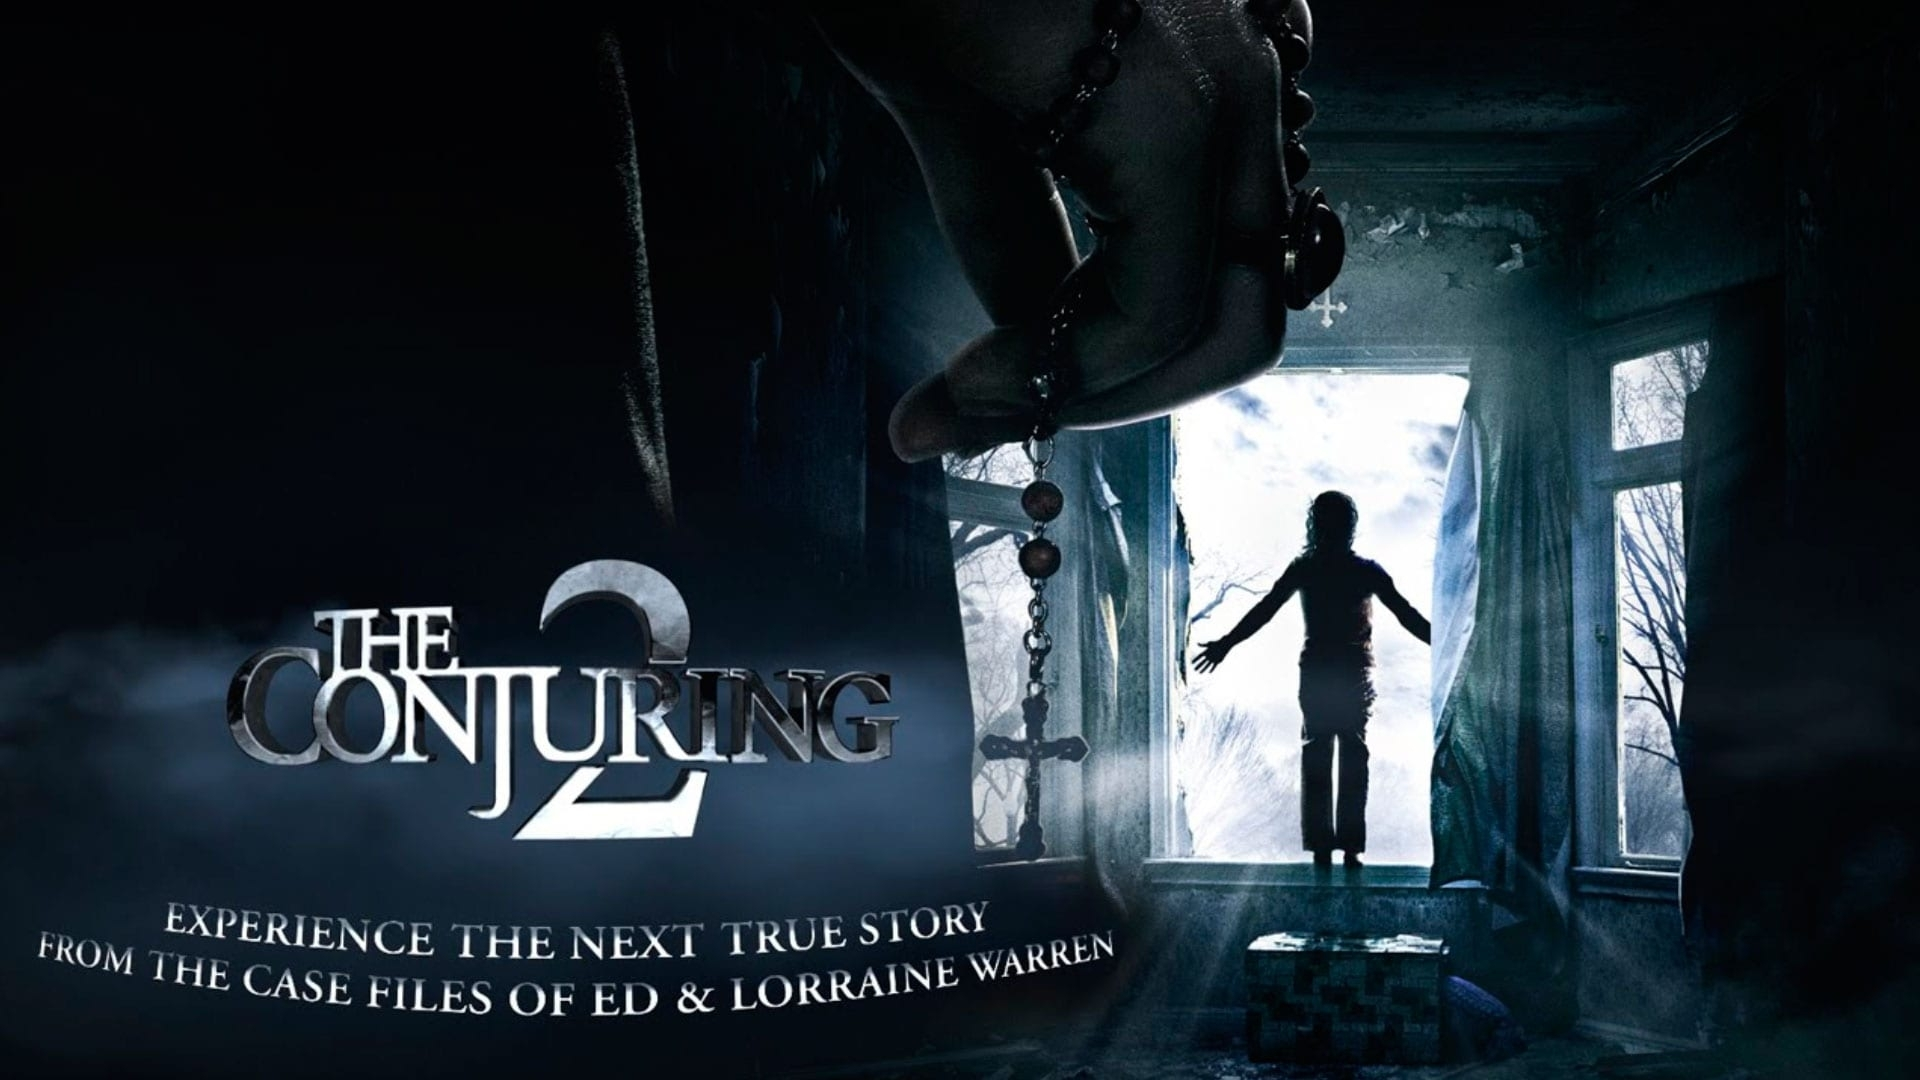 the conjuring 2 hd desktop wallpapers | 7wallpapers